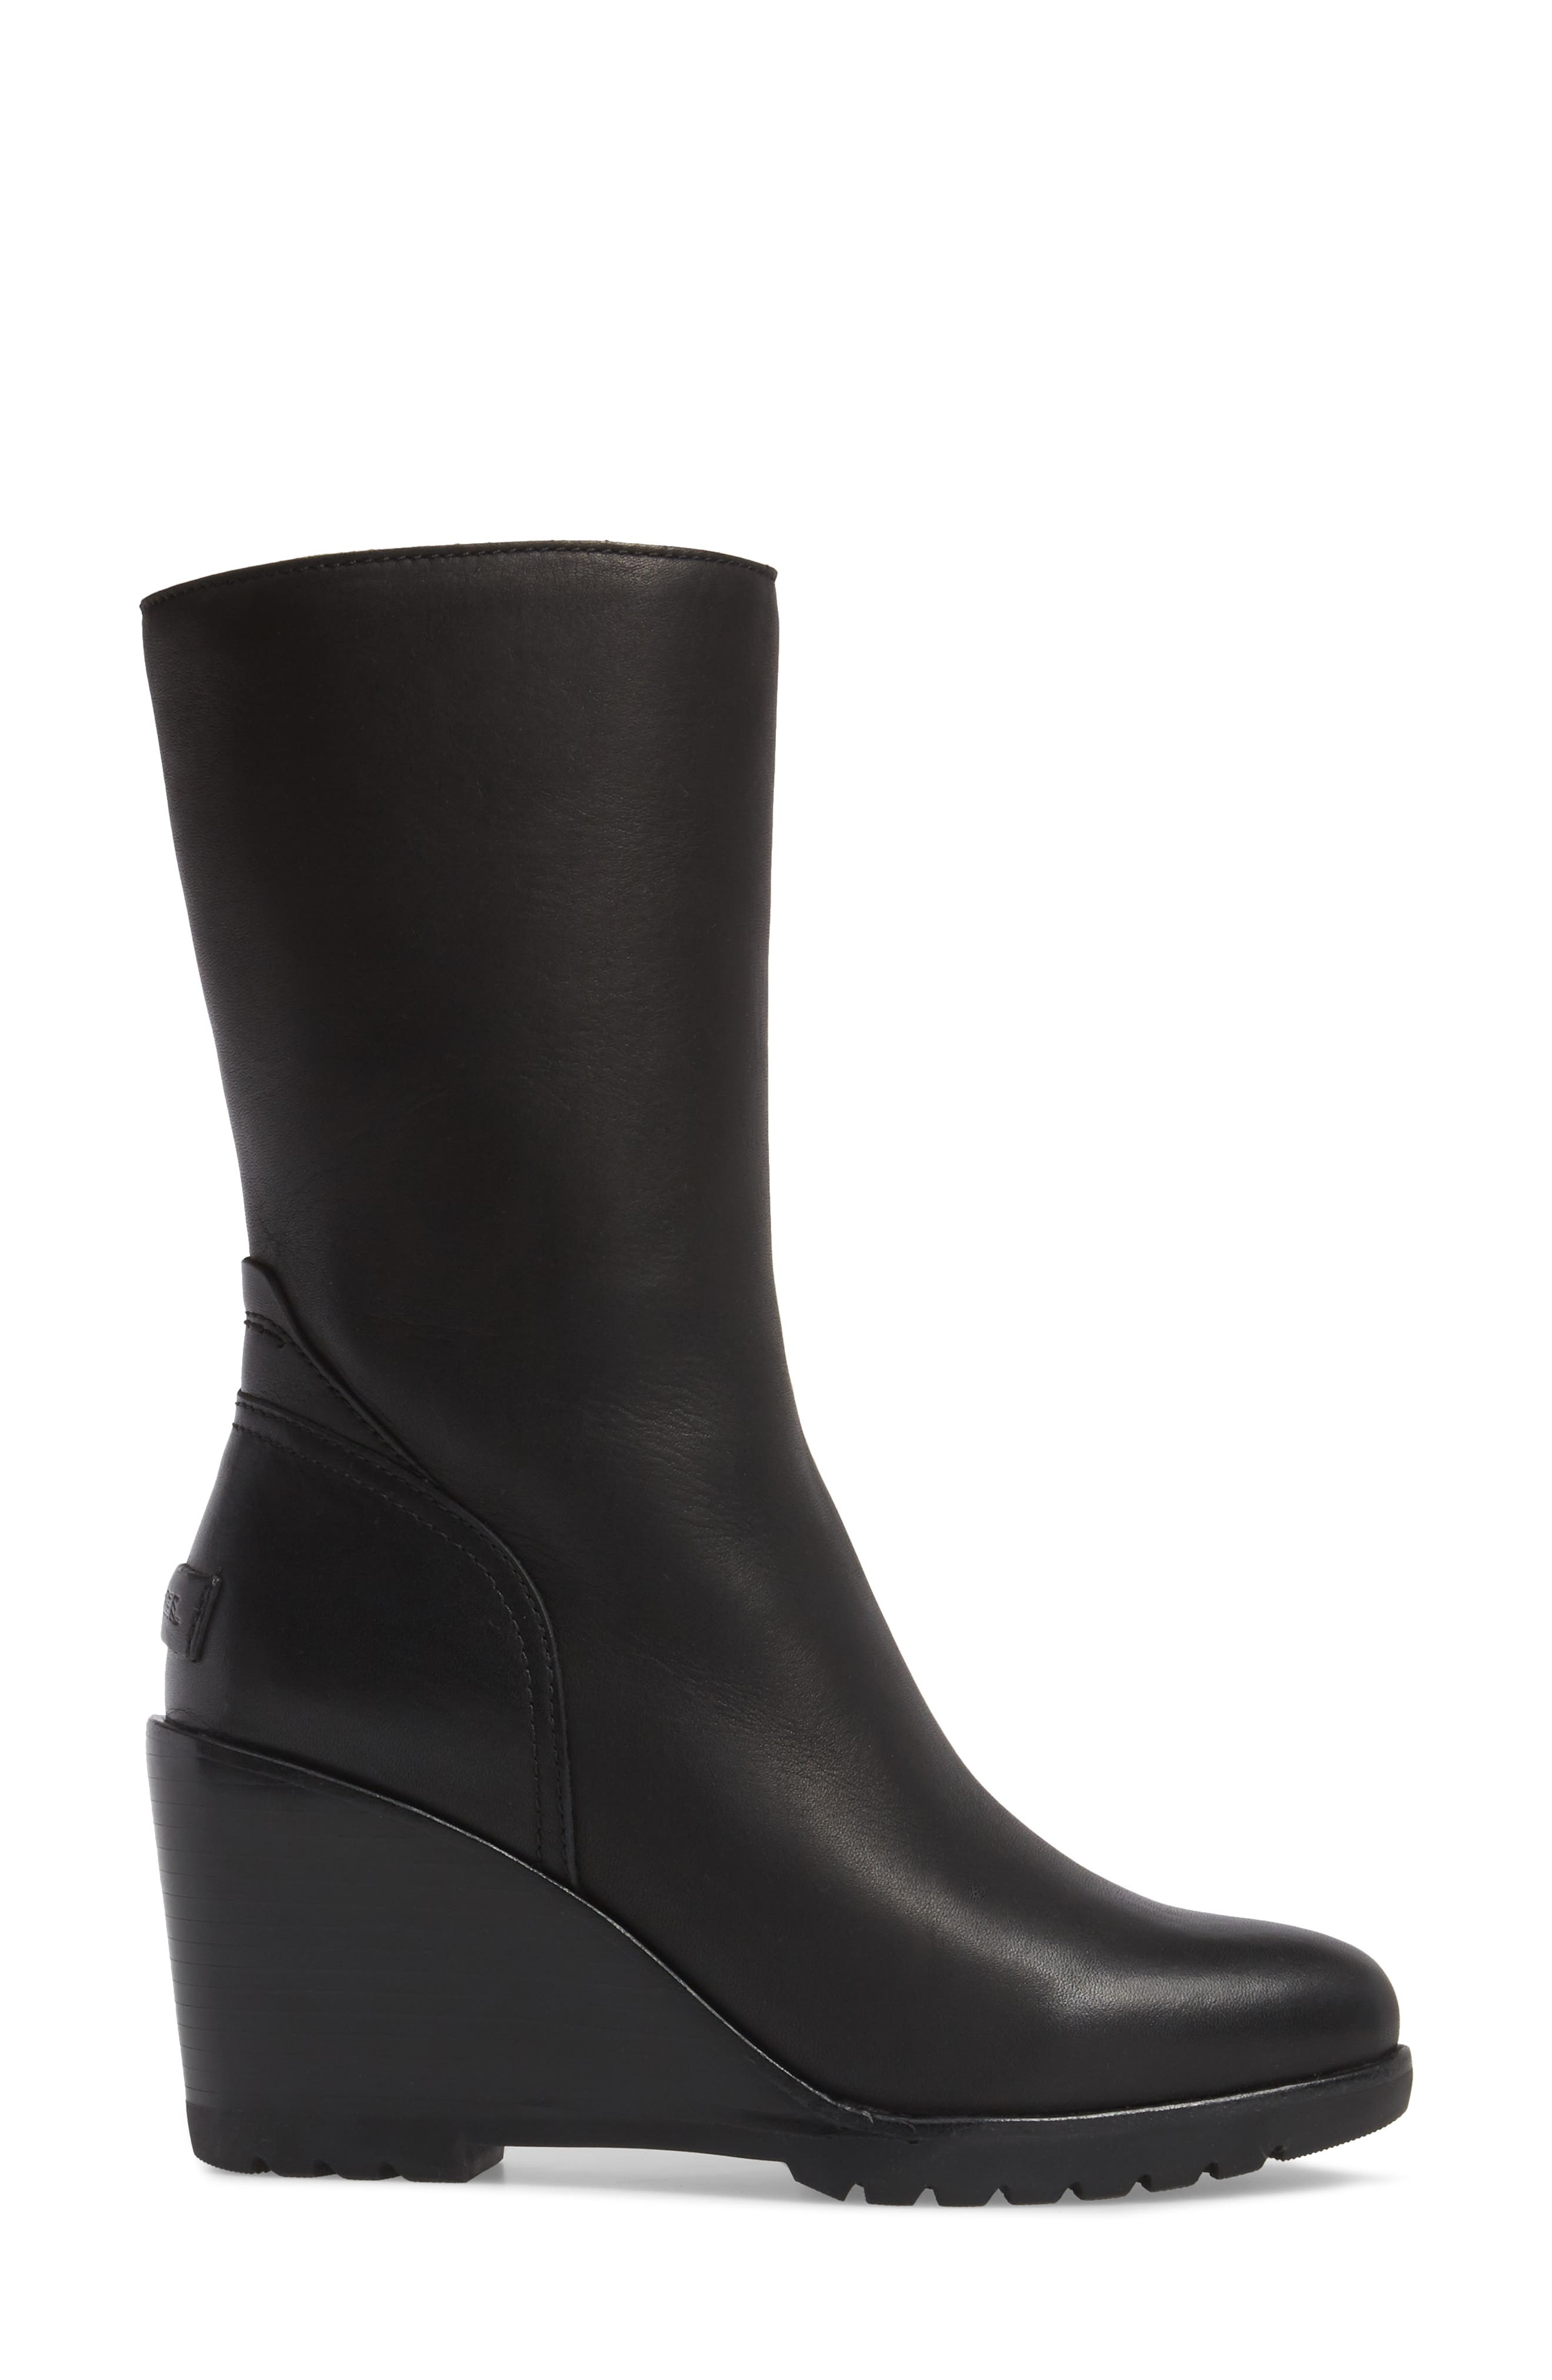 After Hours Waterproof Bootie,                             Alternate thumbnail 3, color,                             Black